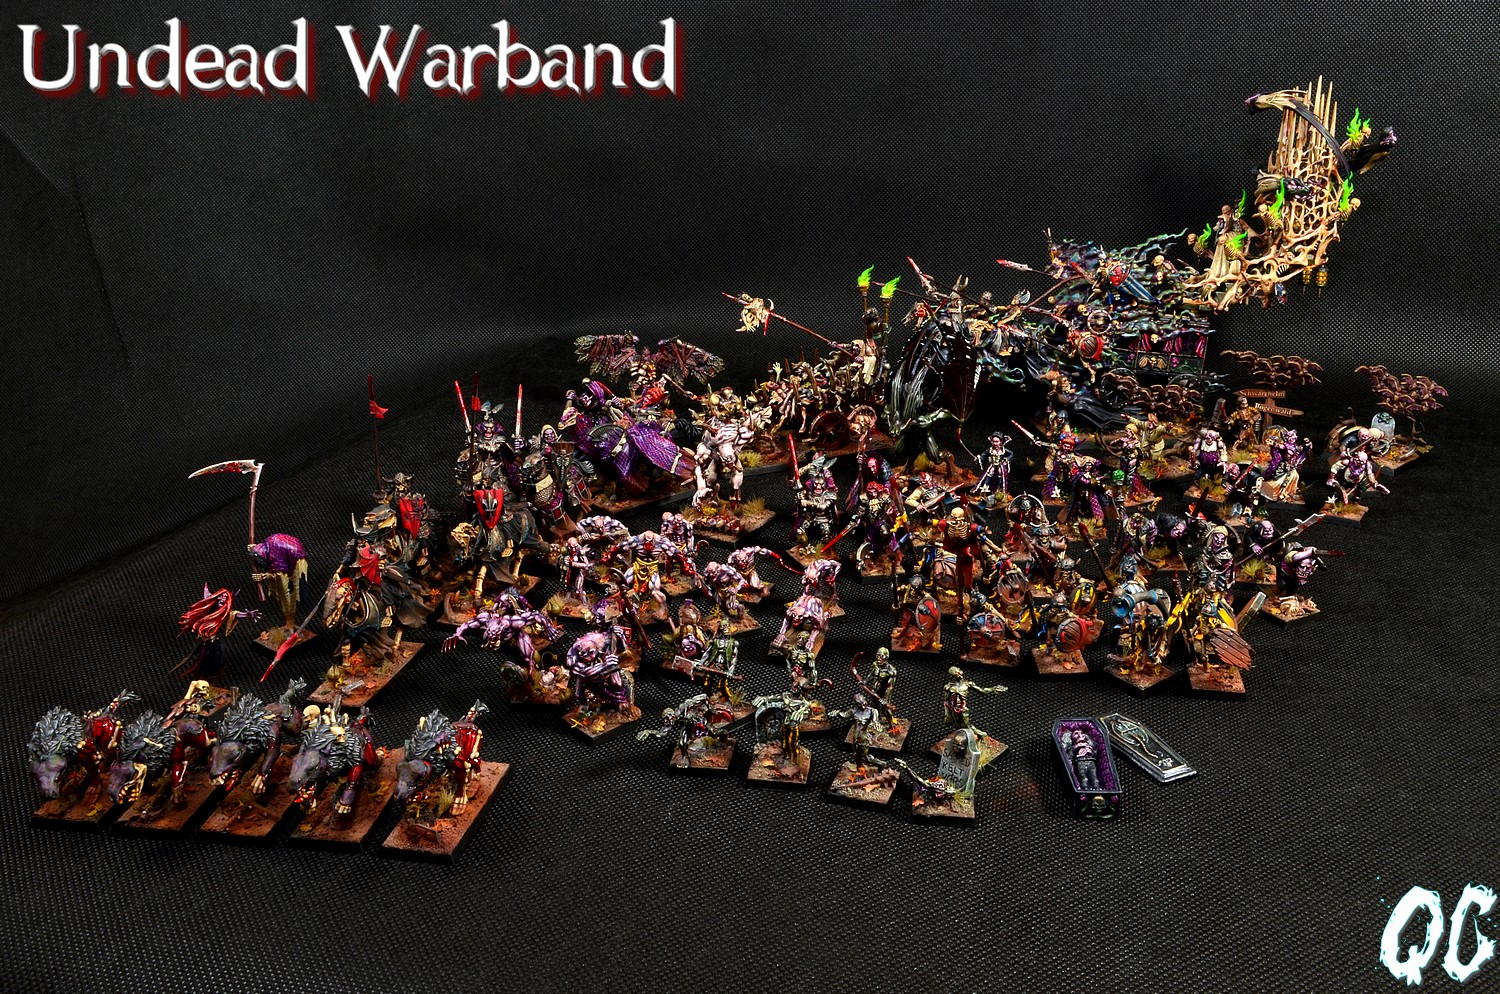 Gallery by qc (Part 2) 000undeadwarband